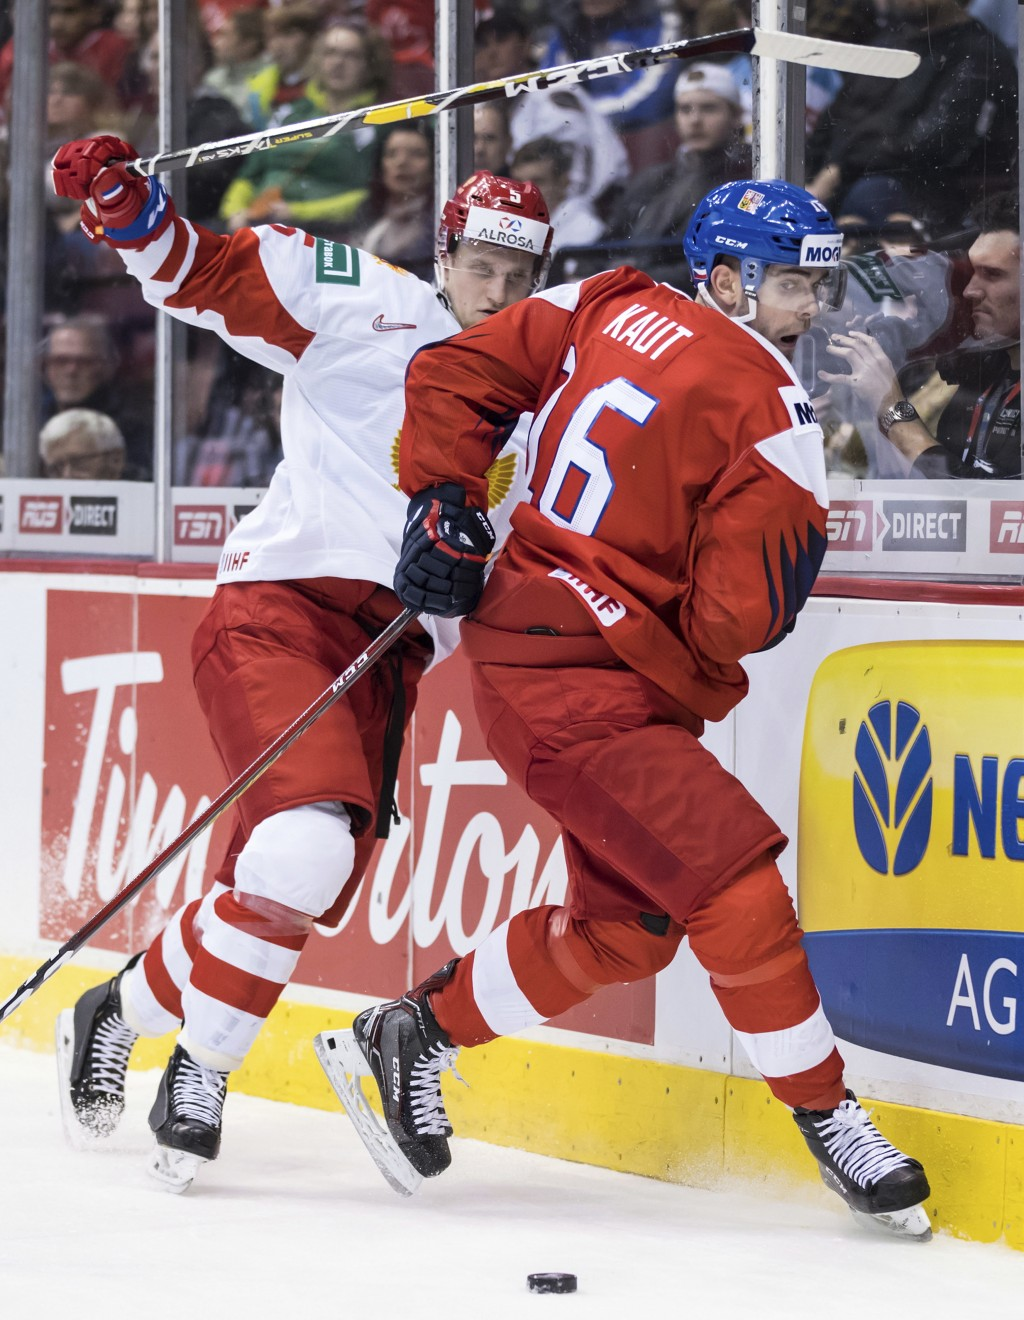 Czech Republic's Martin Kaut (16) and Russia's Dmitri Samorukov (5) collide during third-period IIHF world junior hockey championship game action in V...